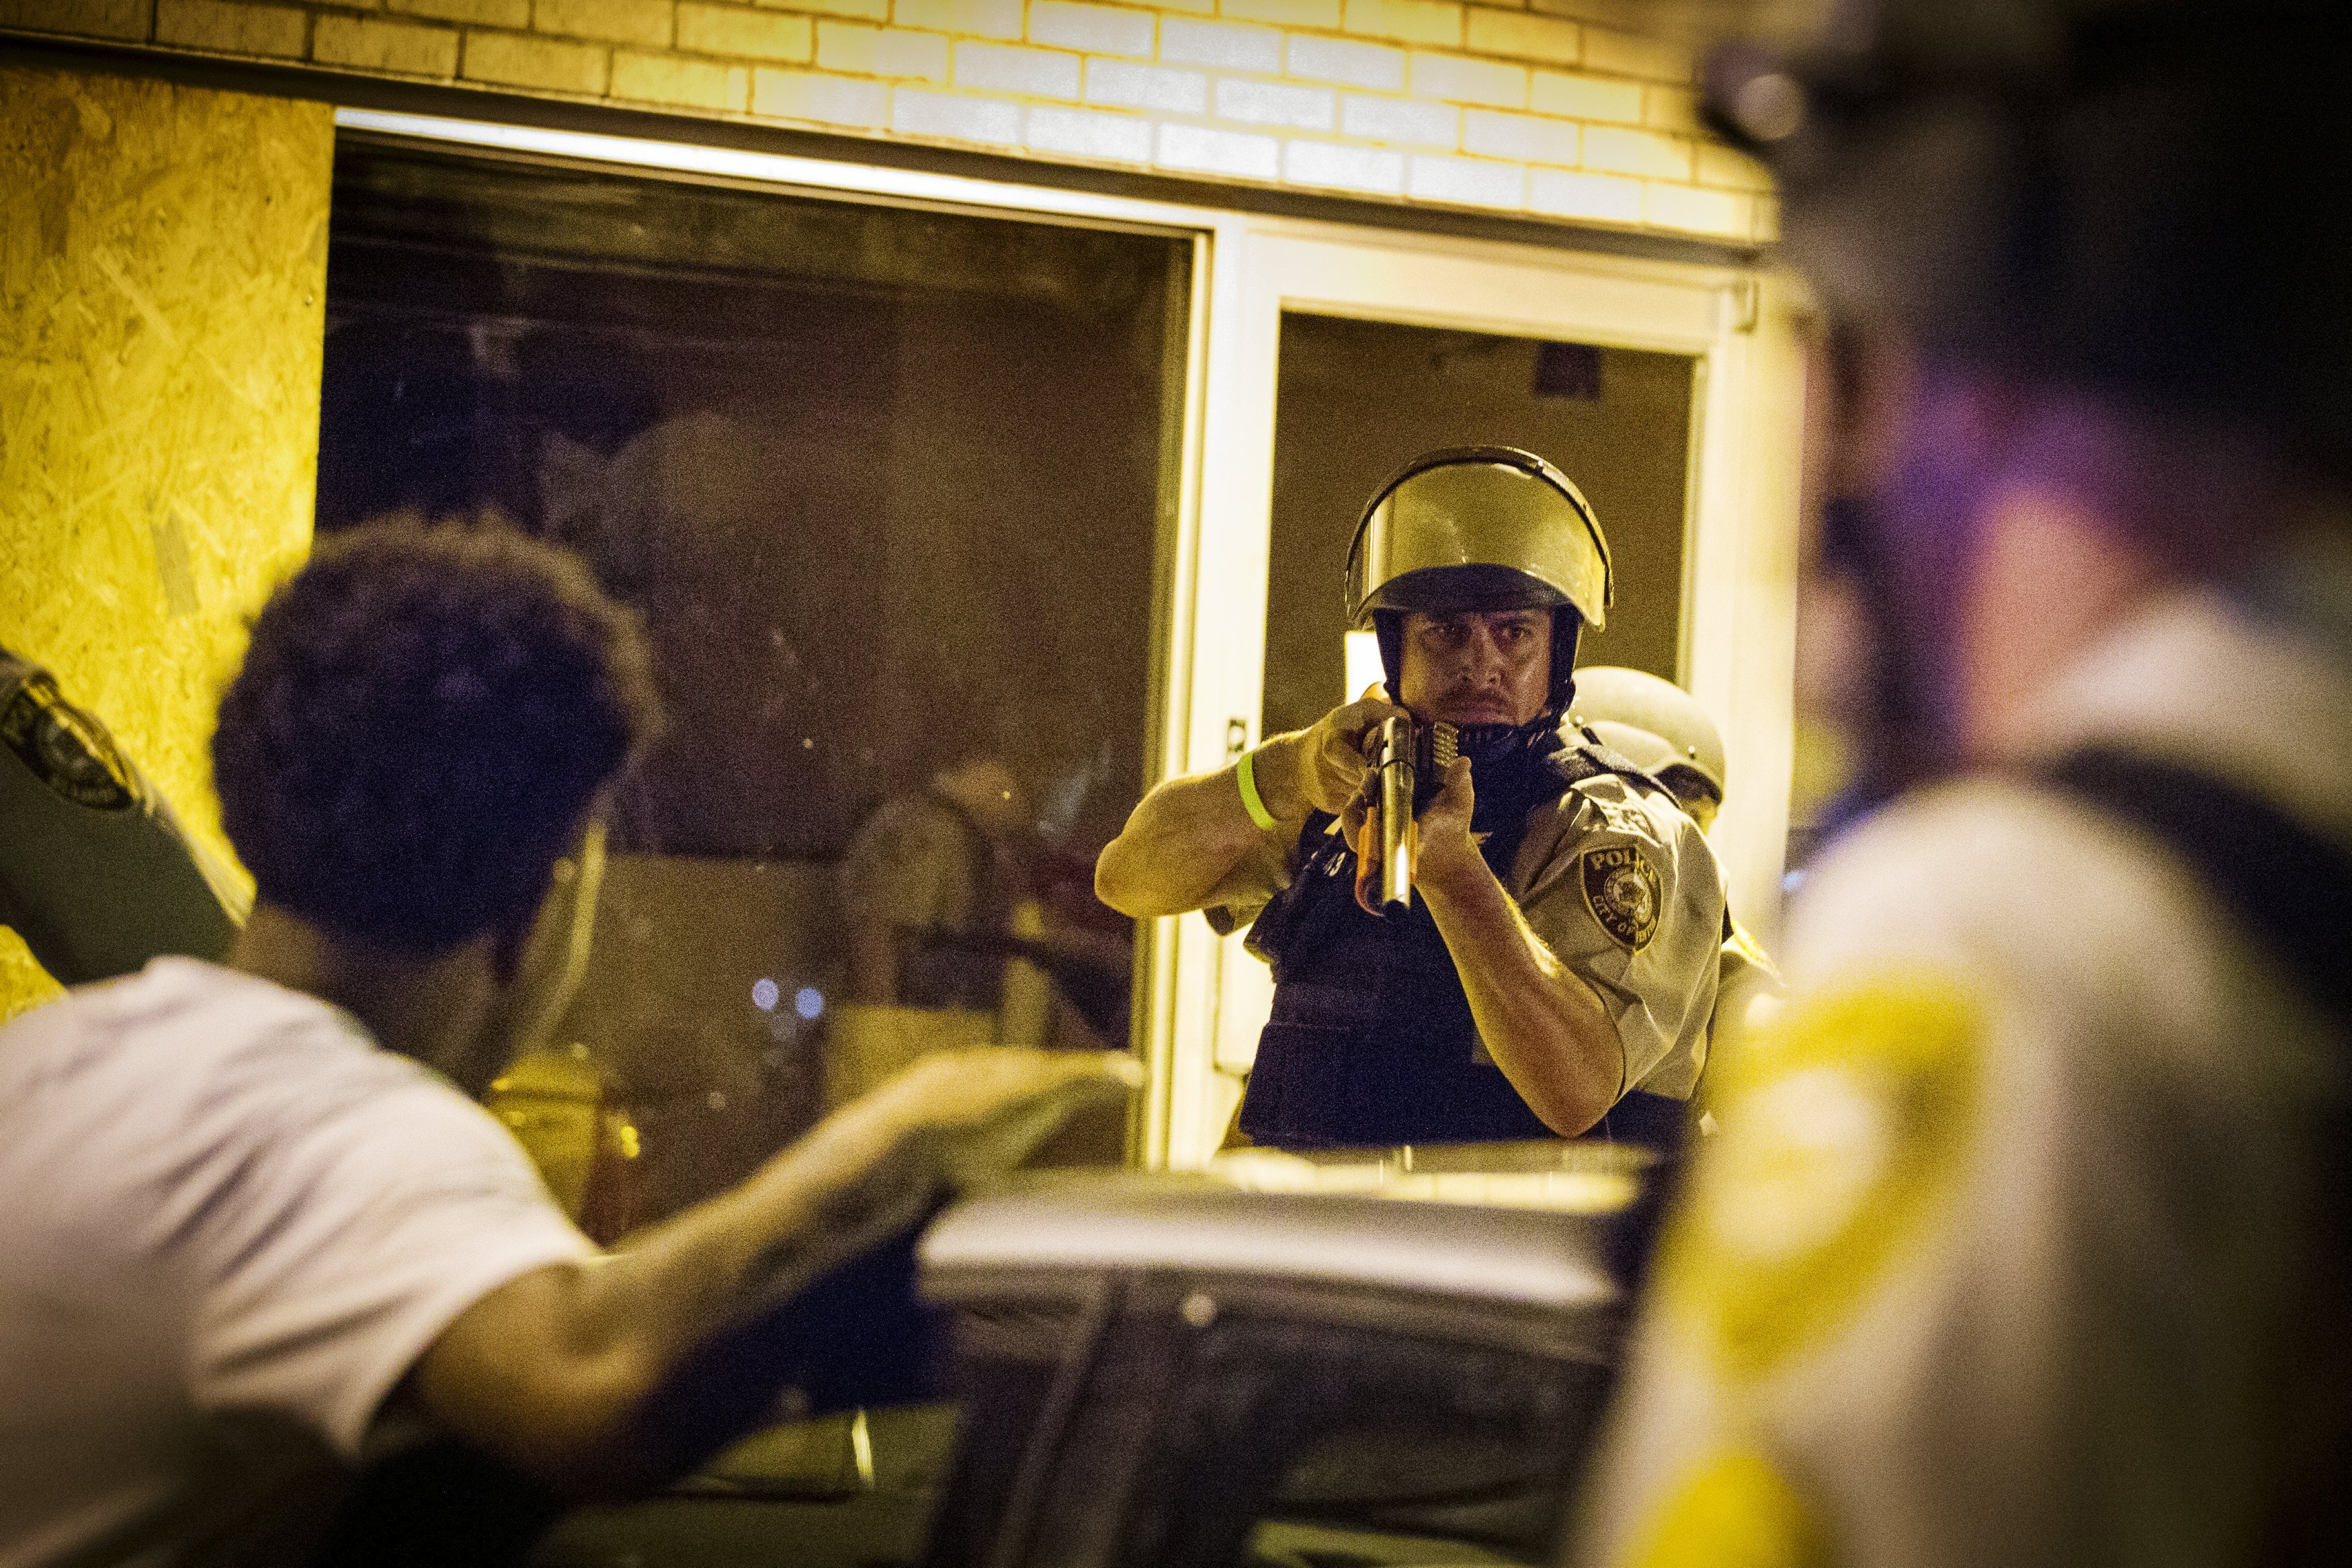 St Louis County police officers arrest an anti-police demonstrator in Ferguson, Mo. on Aug. 11, 2015.